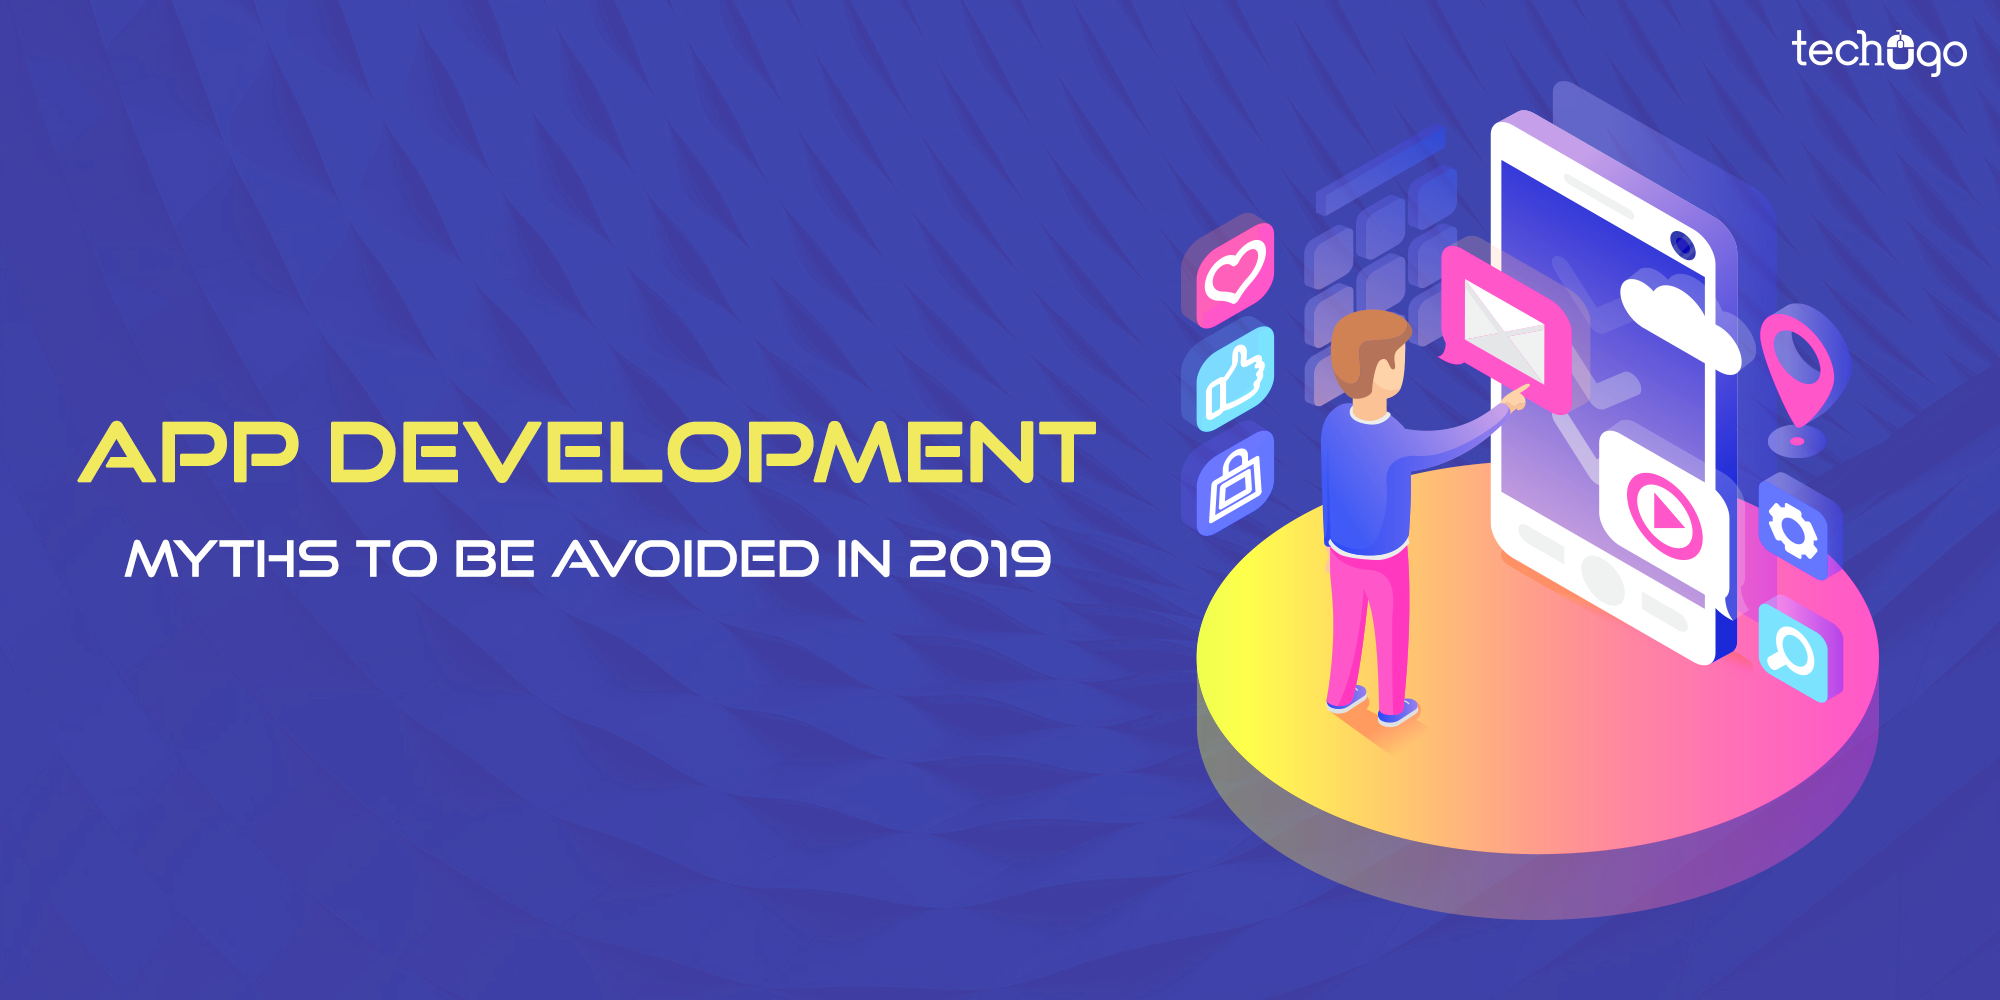 :  App Development Myths To Be Avoided In 2019